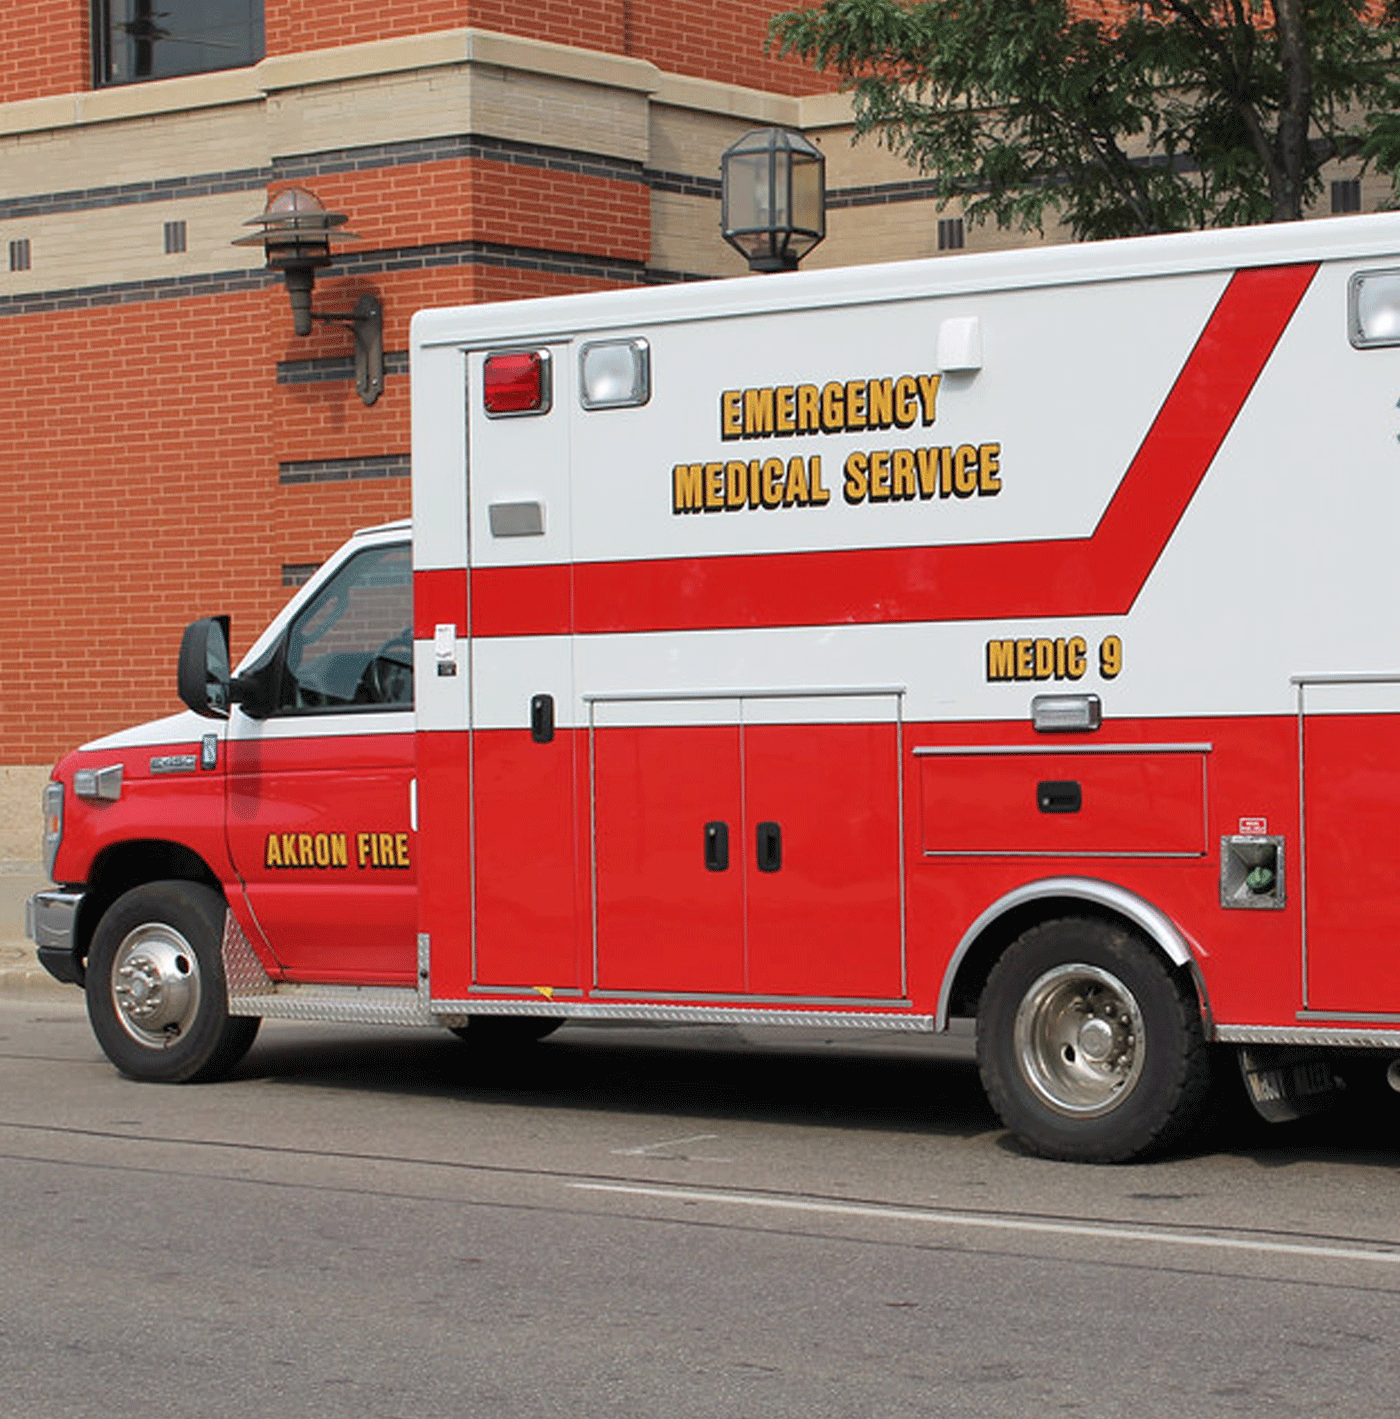 A large red and white ambulance parked in front of a medical facility.